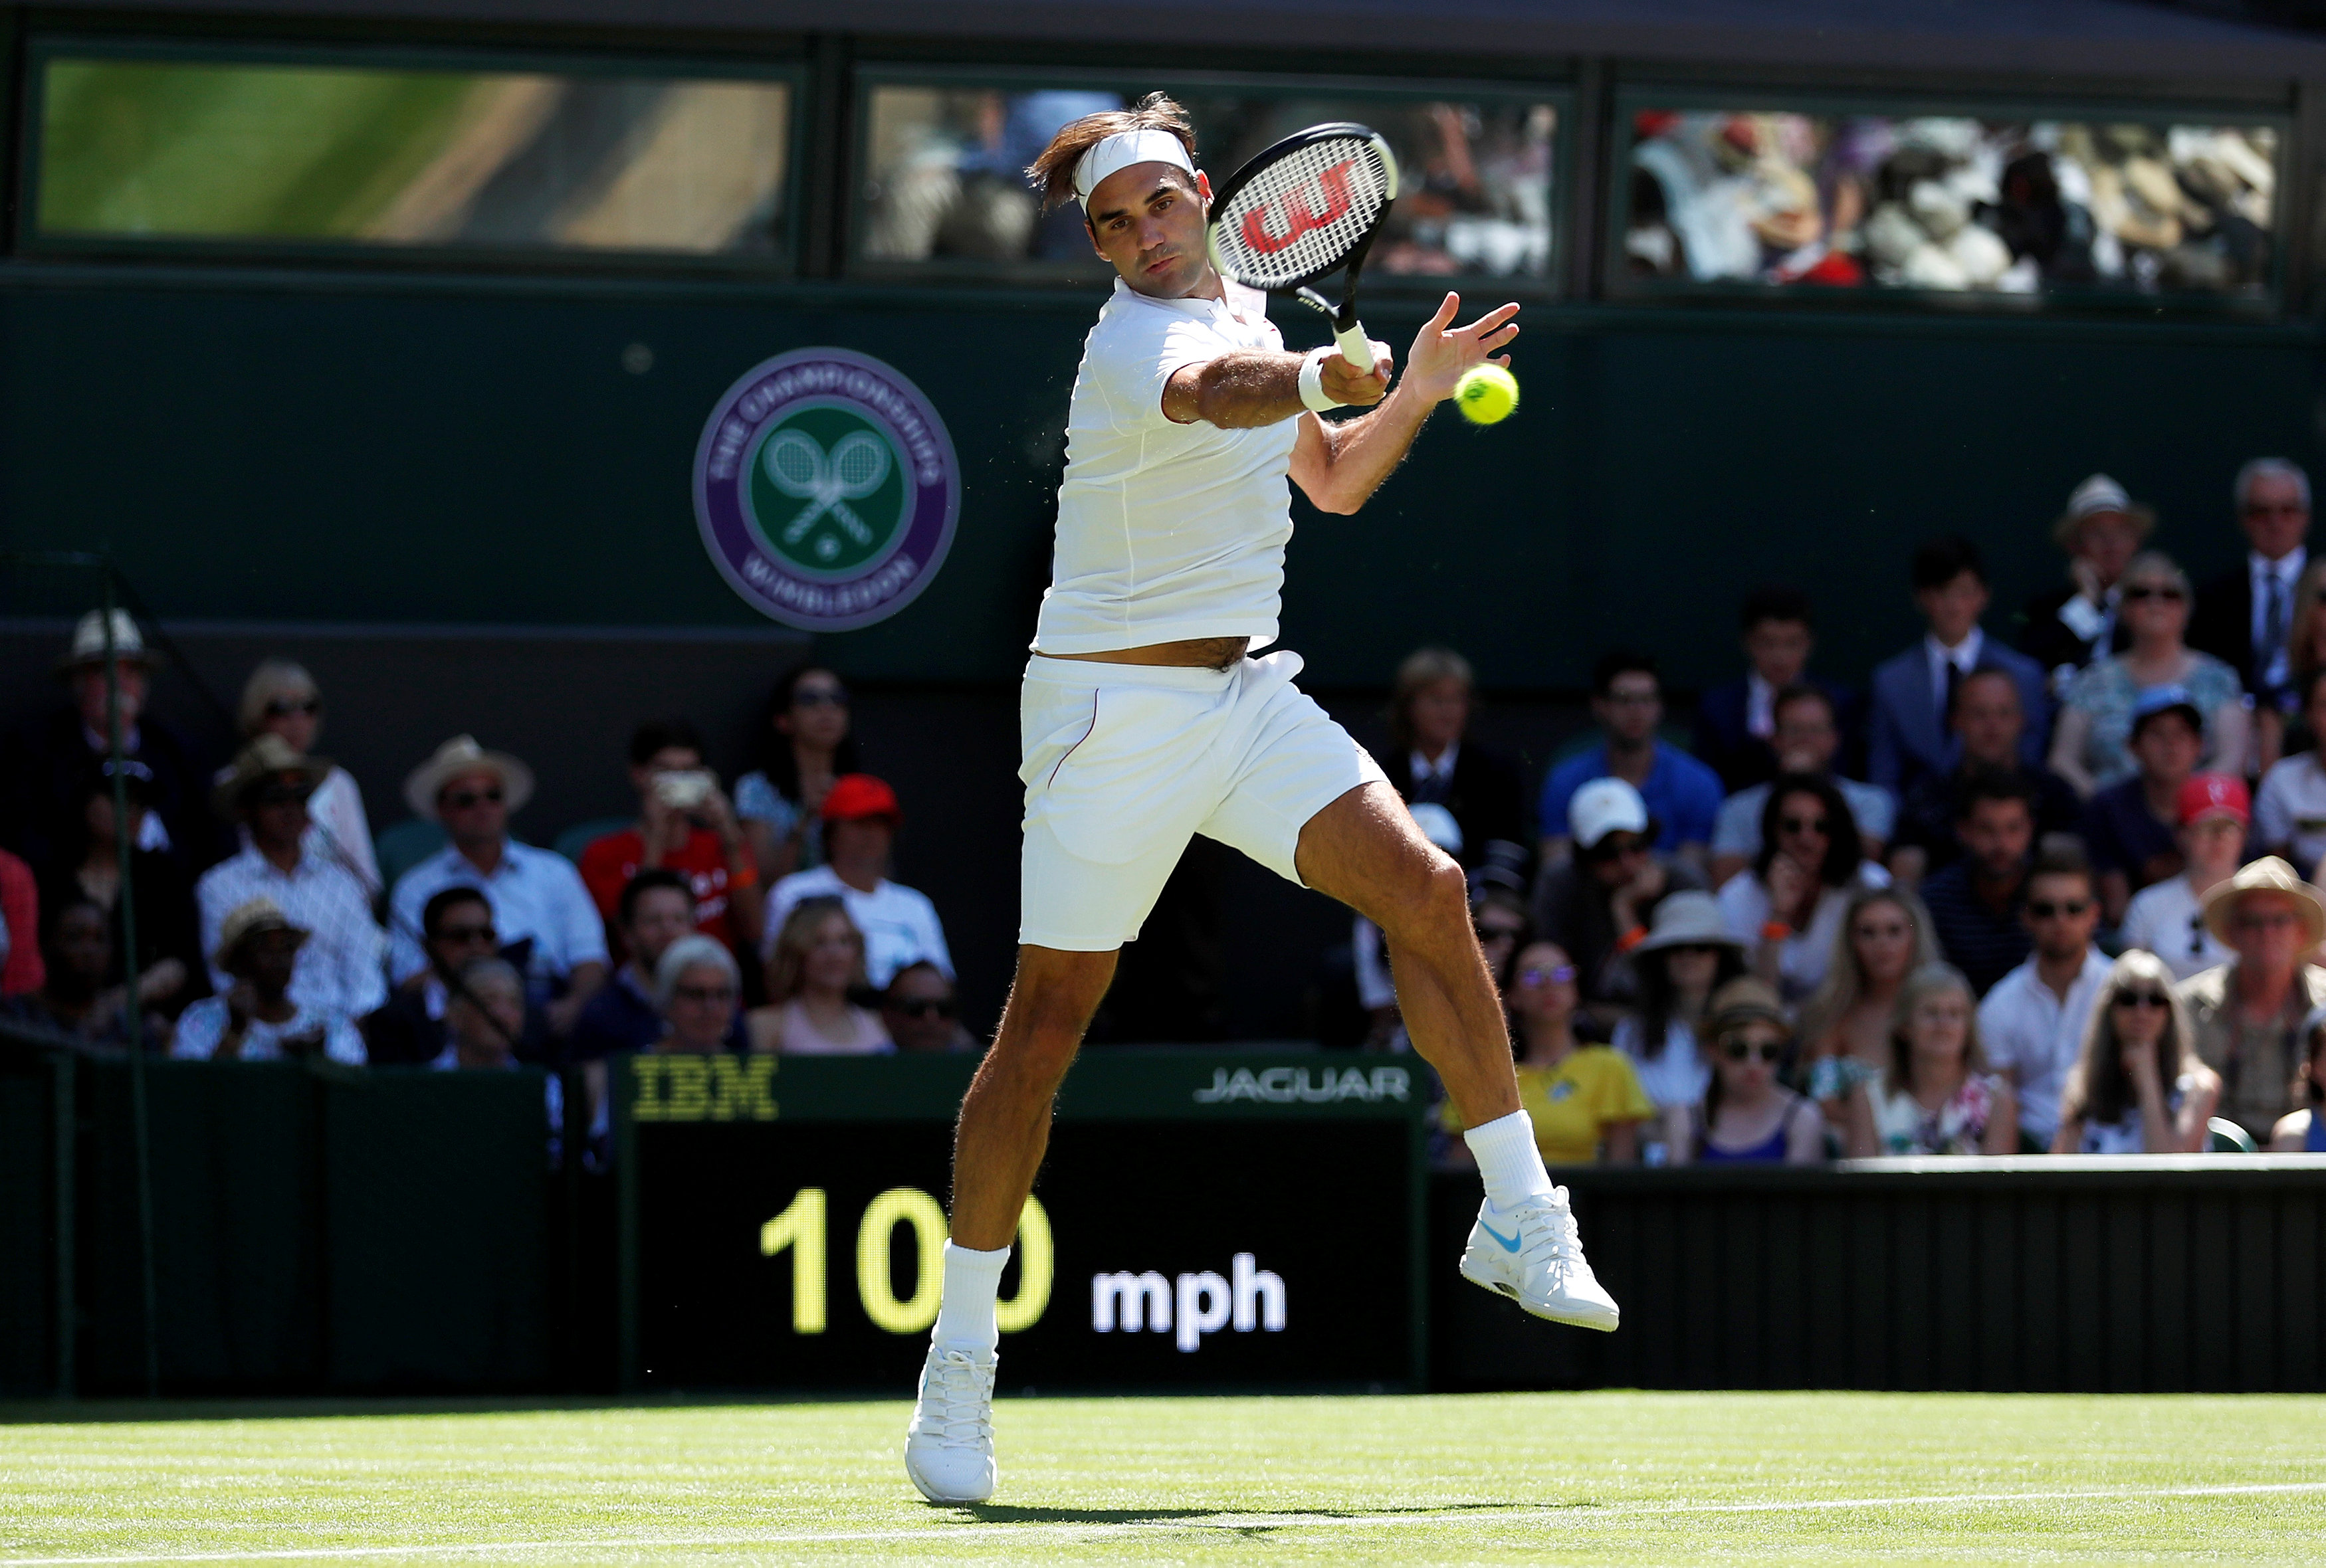 Tennis - Wimbledon - All England Lawn Tennis and Croquet Club, London, Britain - July 2, 2018 Switzerland's Roger Federer in action during the first round match against Serbia's Dusan Lajovic. REUTERS/Andrew Boyers